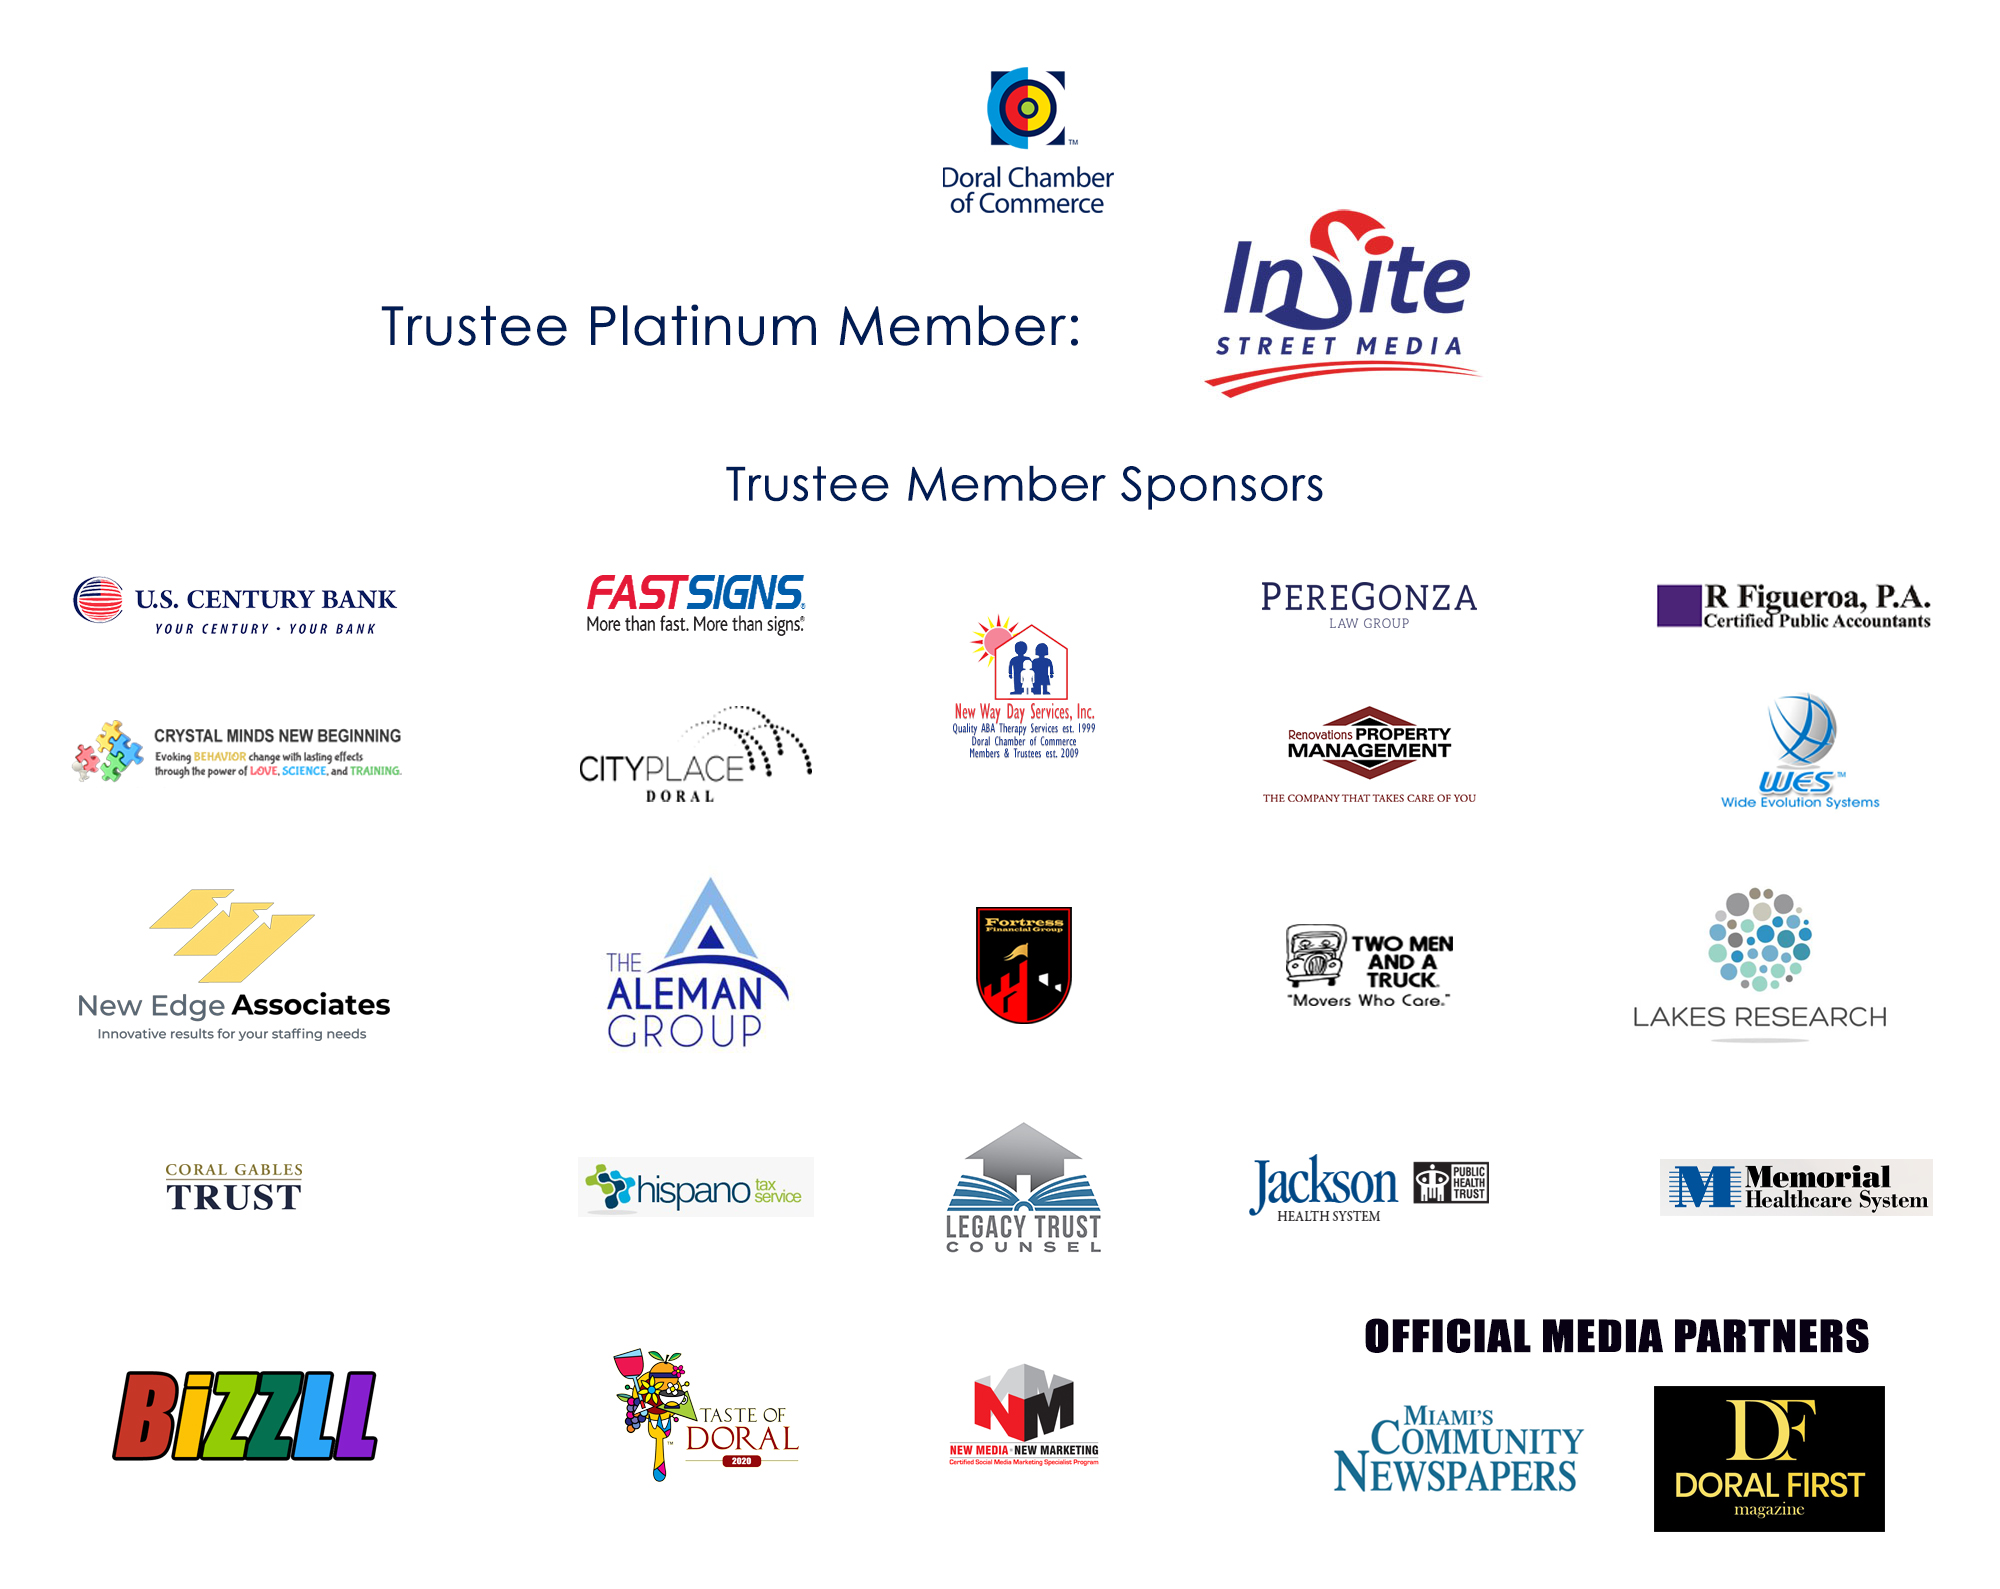 Doral Chamber of Commerce Trustee Members 2021. Best of Doral.